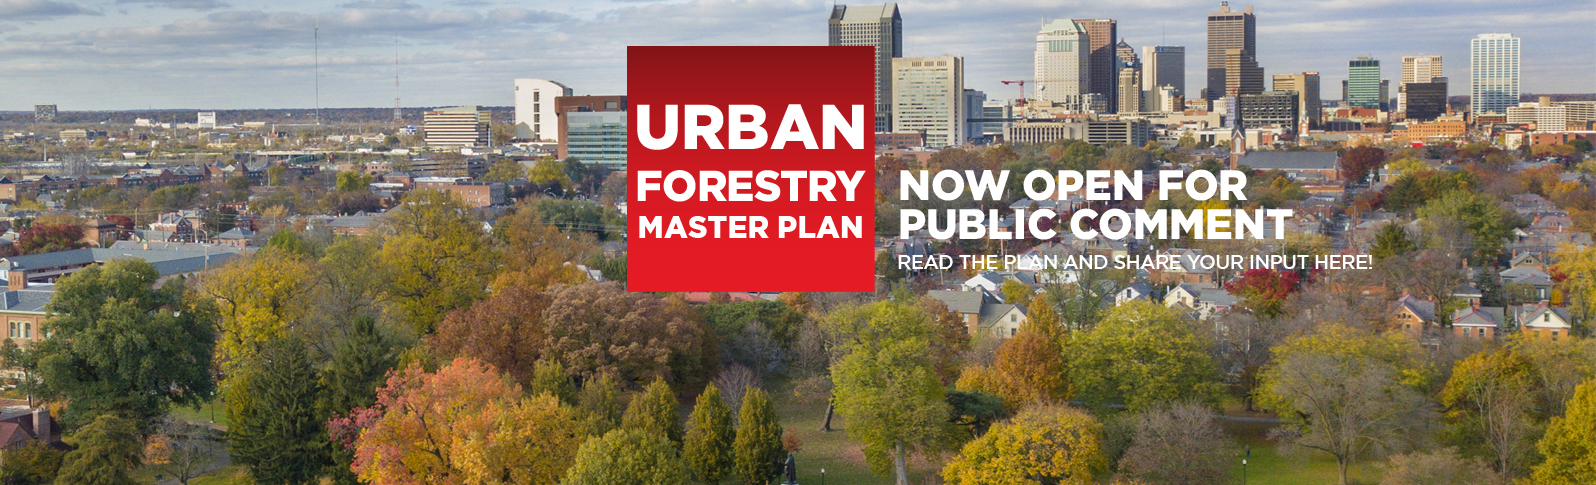 Urban Forestry Master Plan